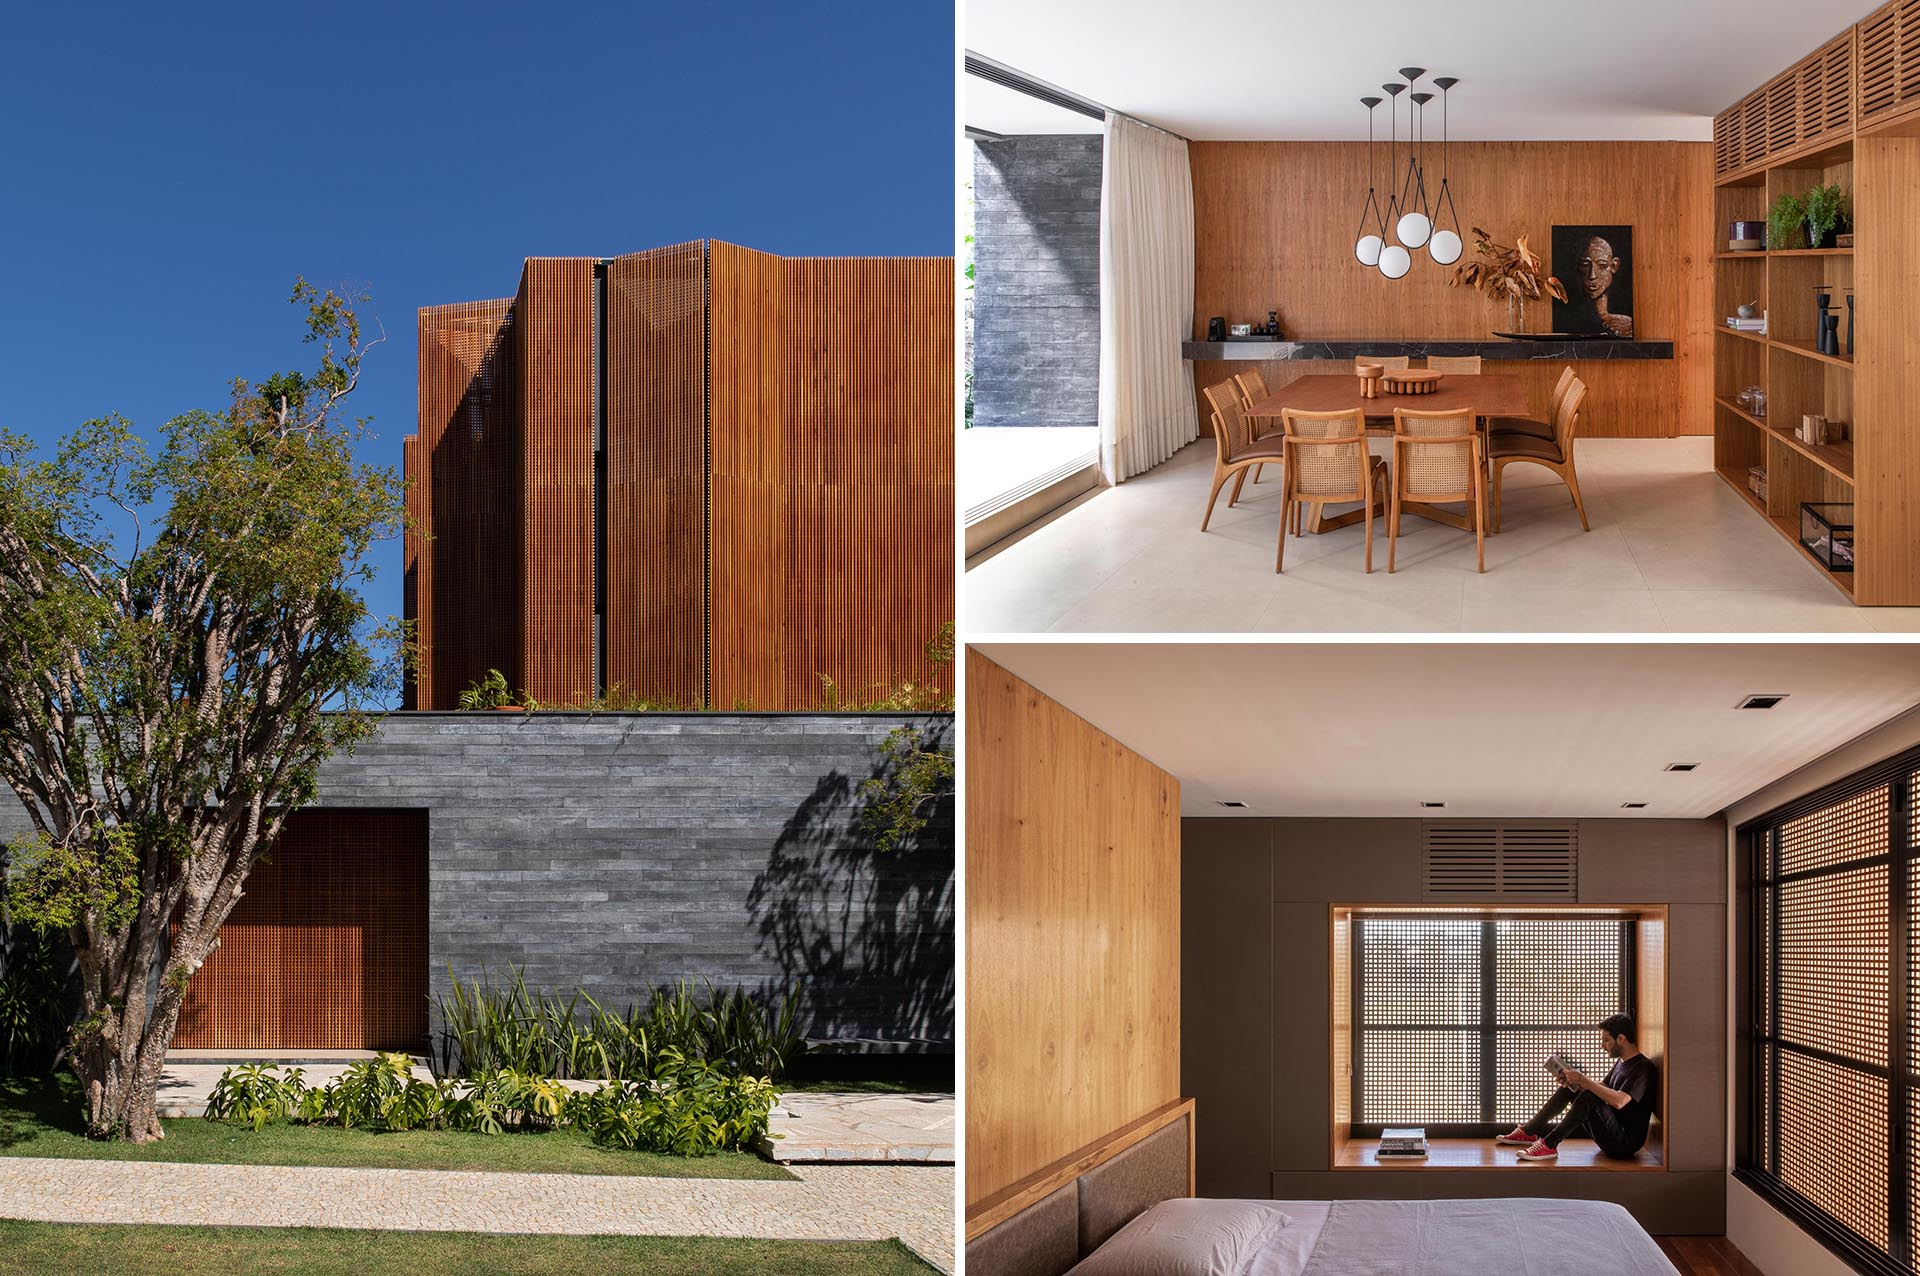 The upper level of this modern home is covered with wooden louvers, creating privacy and thermal comfort.